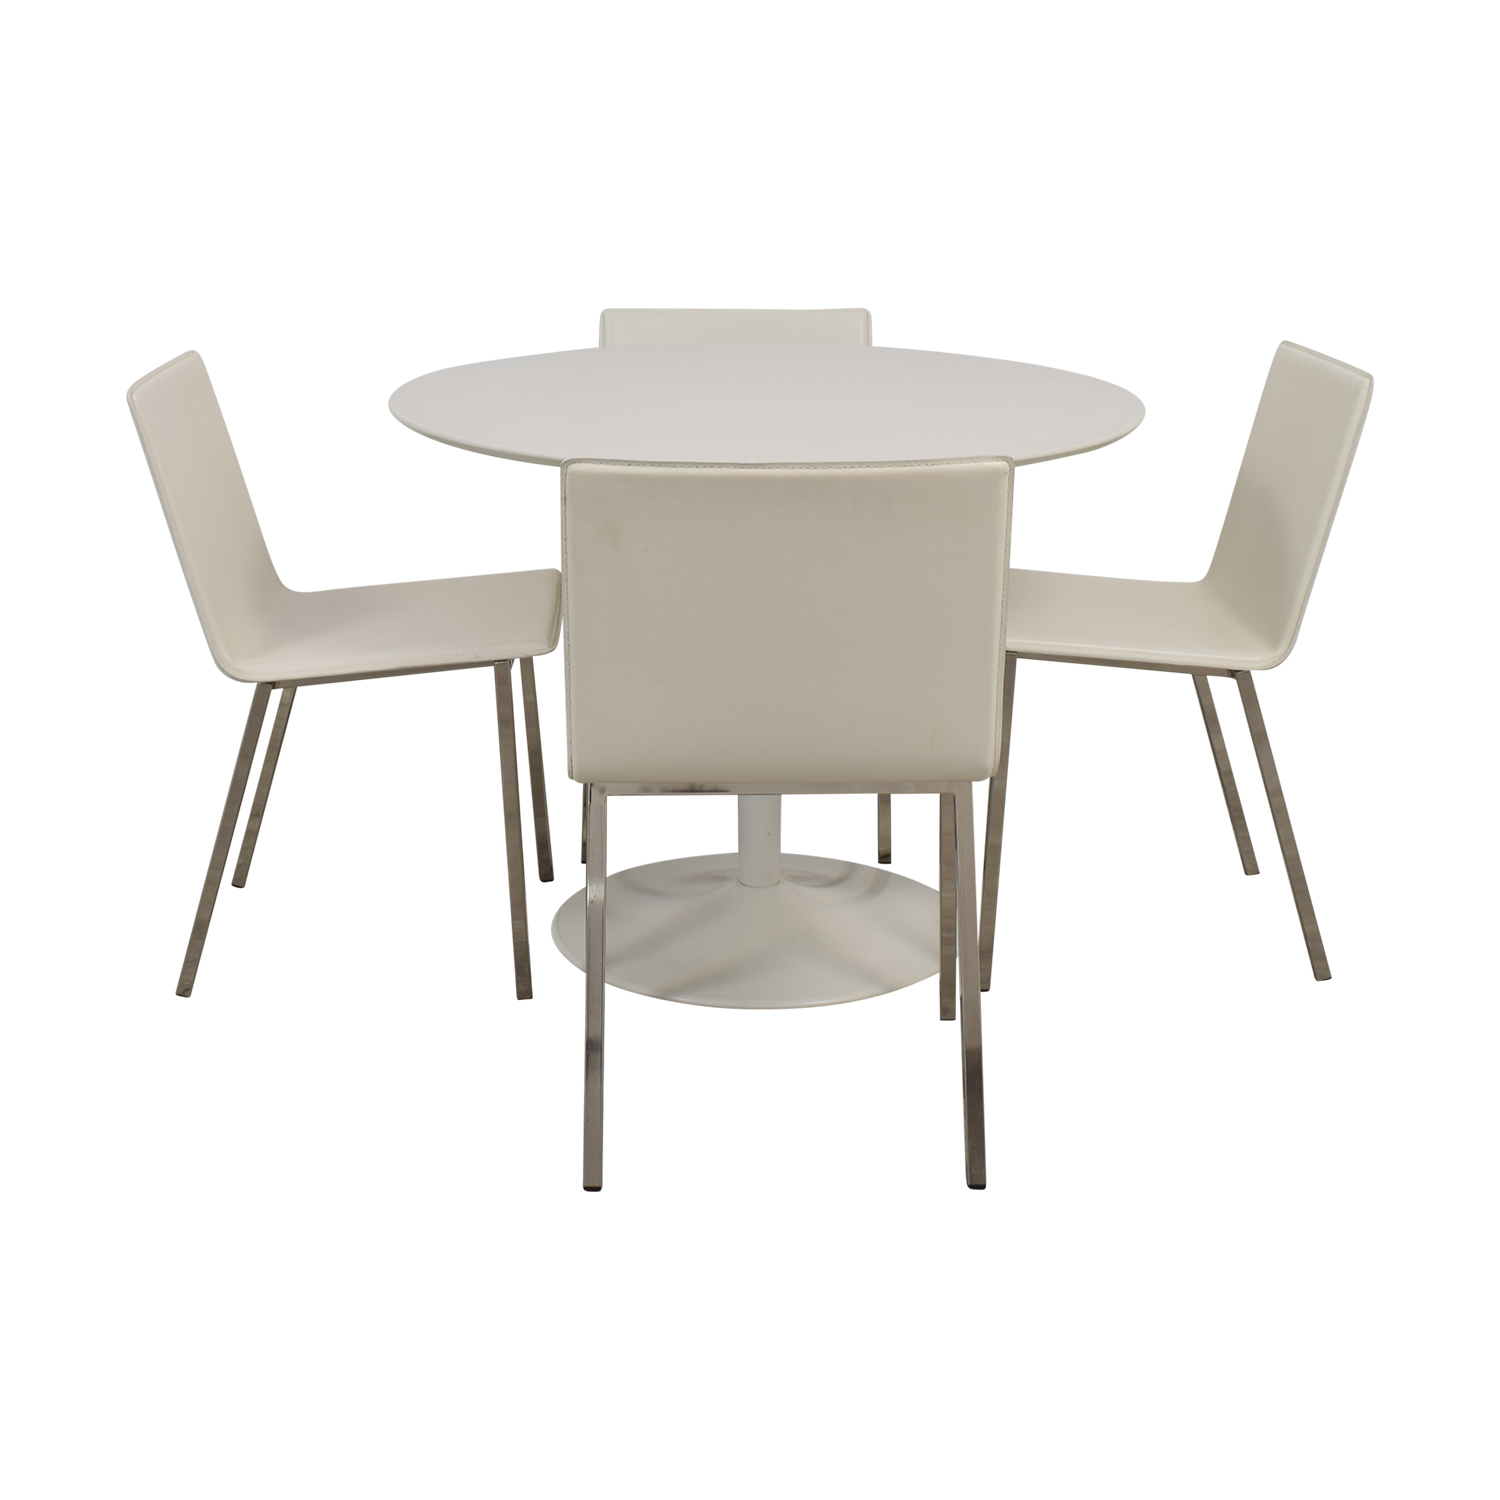 CB2 CB2 White Round Dining Set dimensions